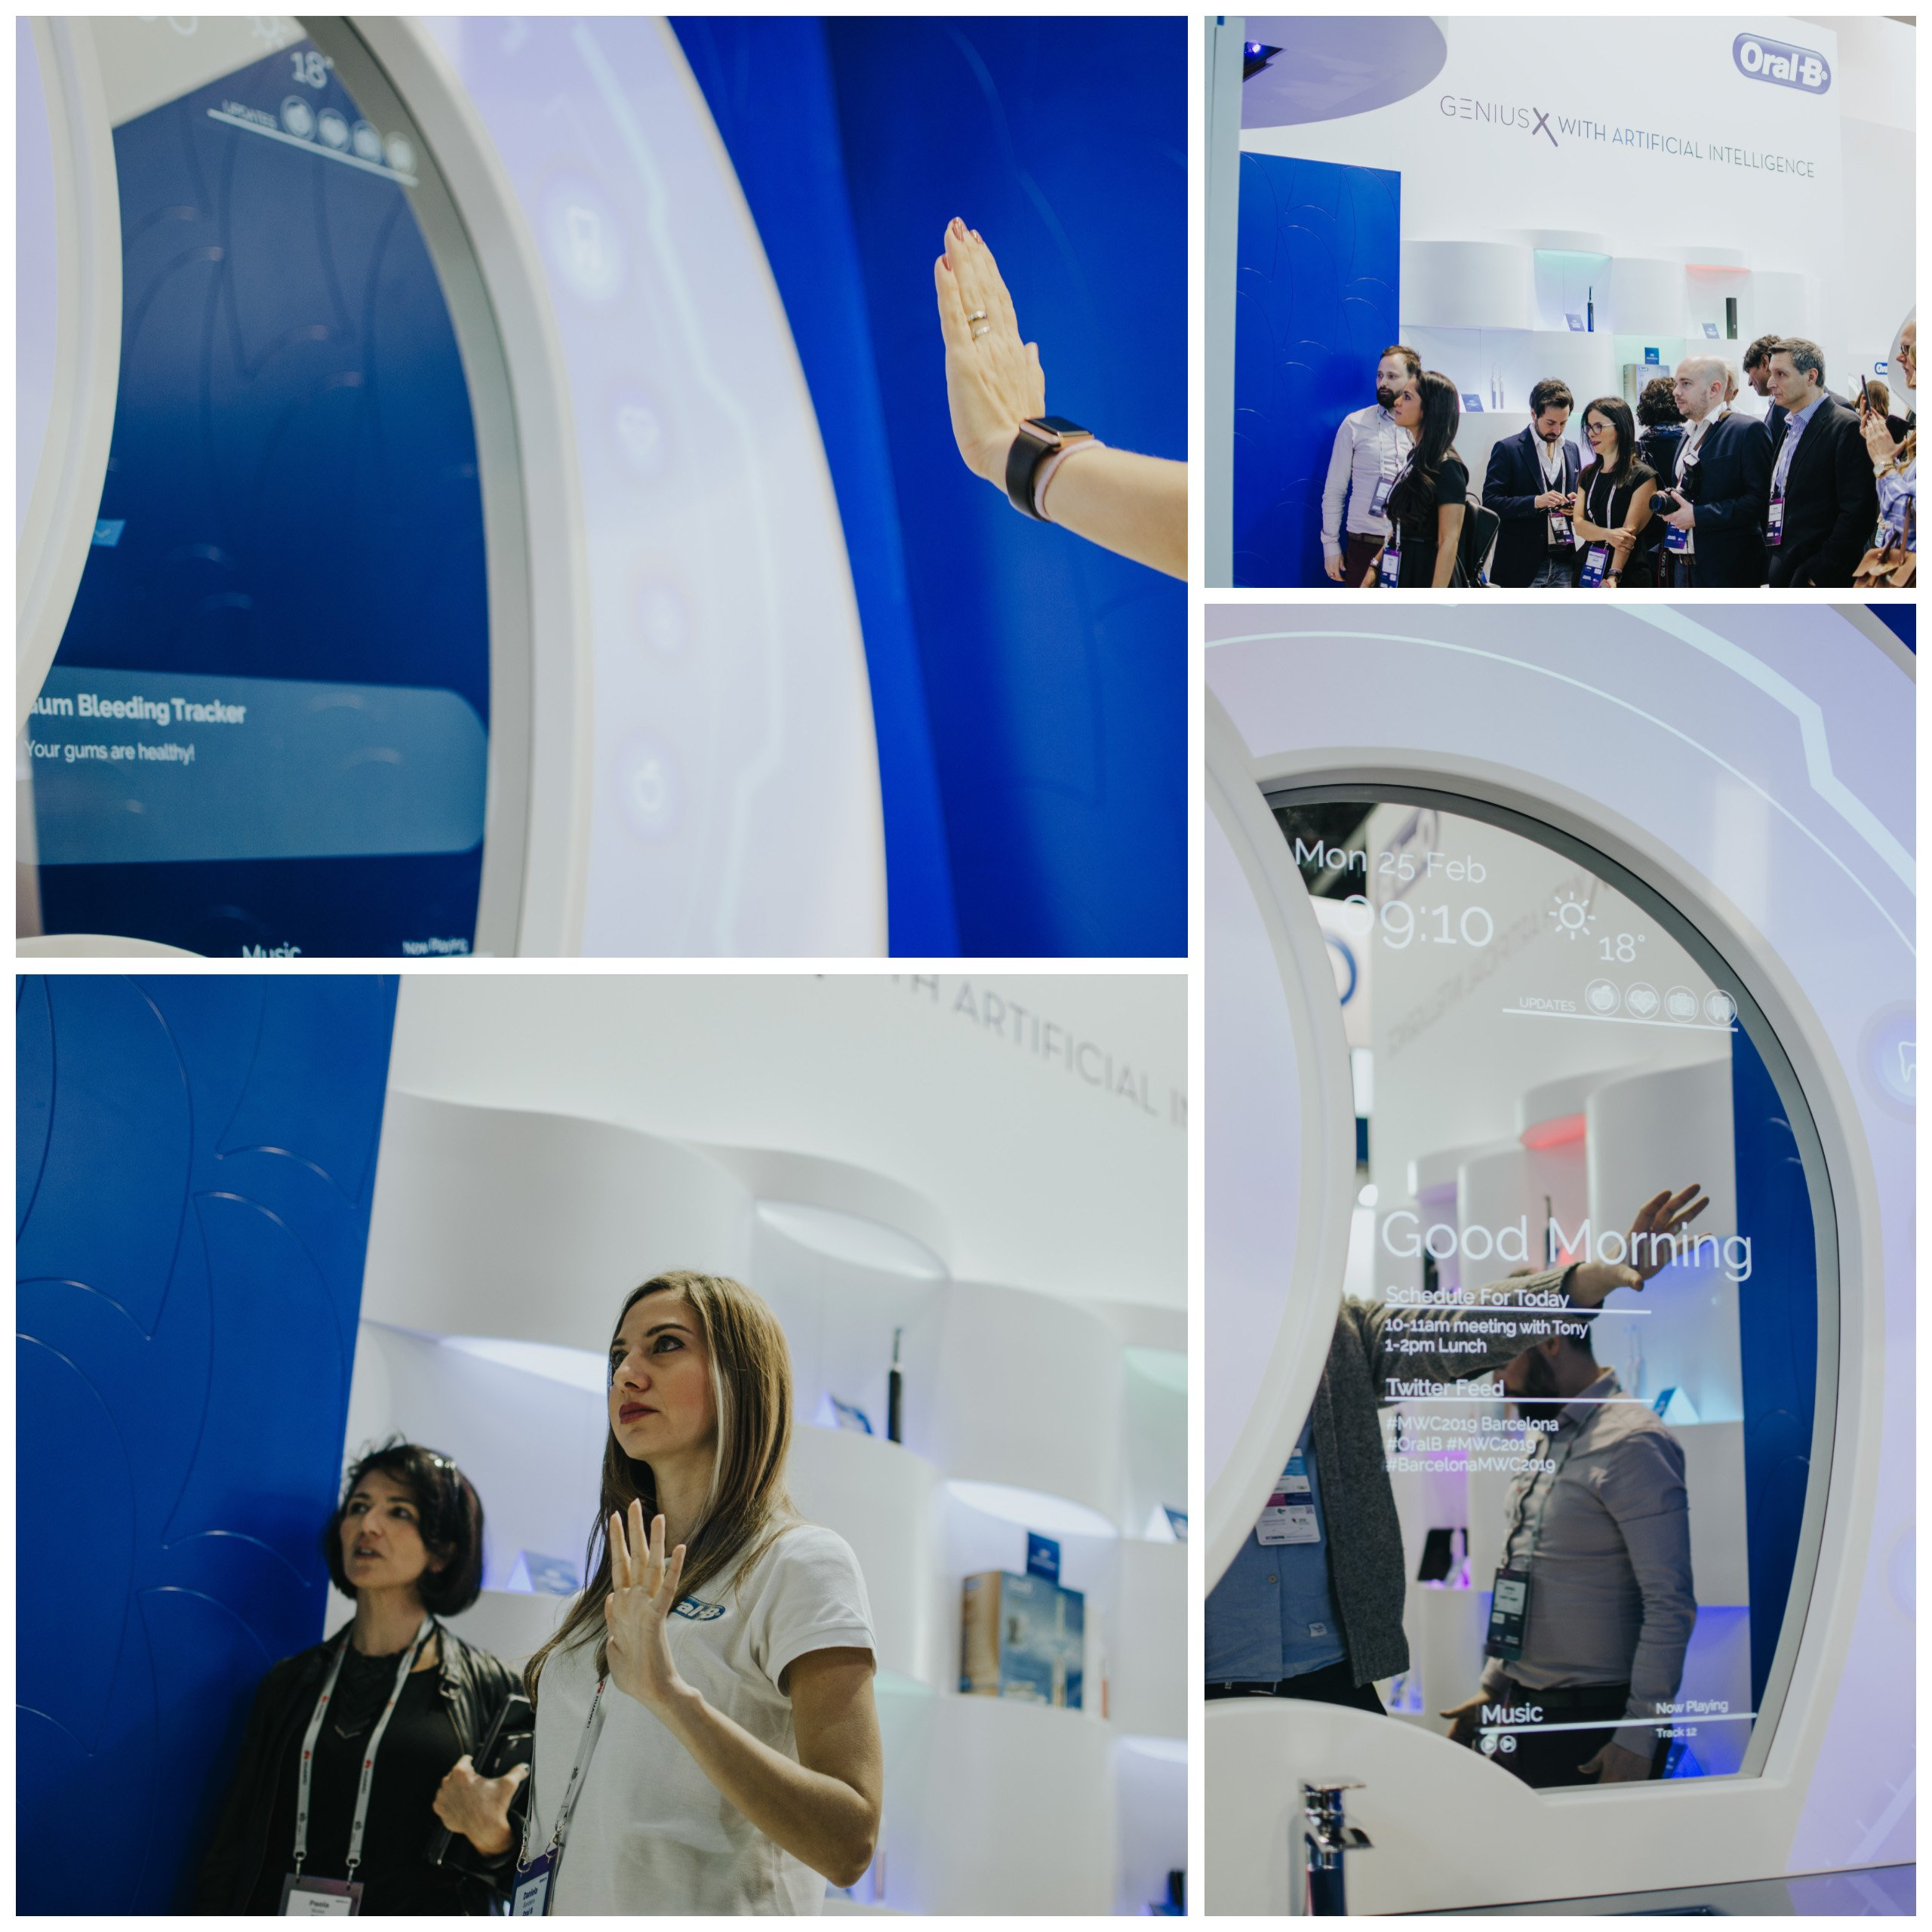 Oral B MWC Event Activation